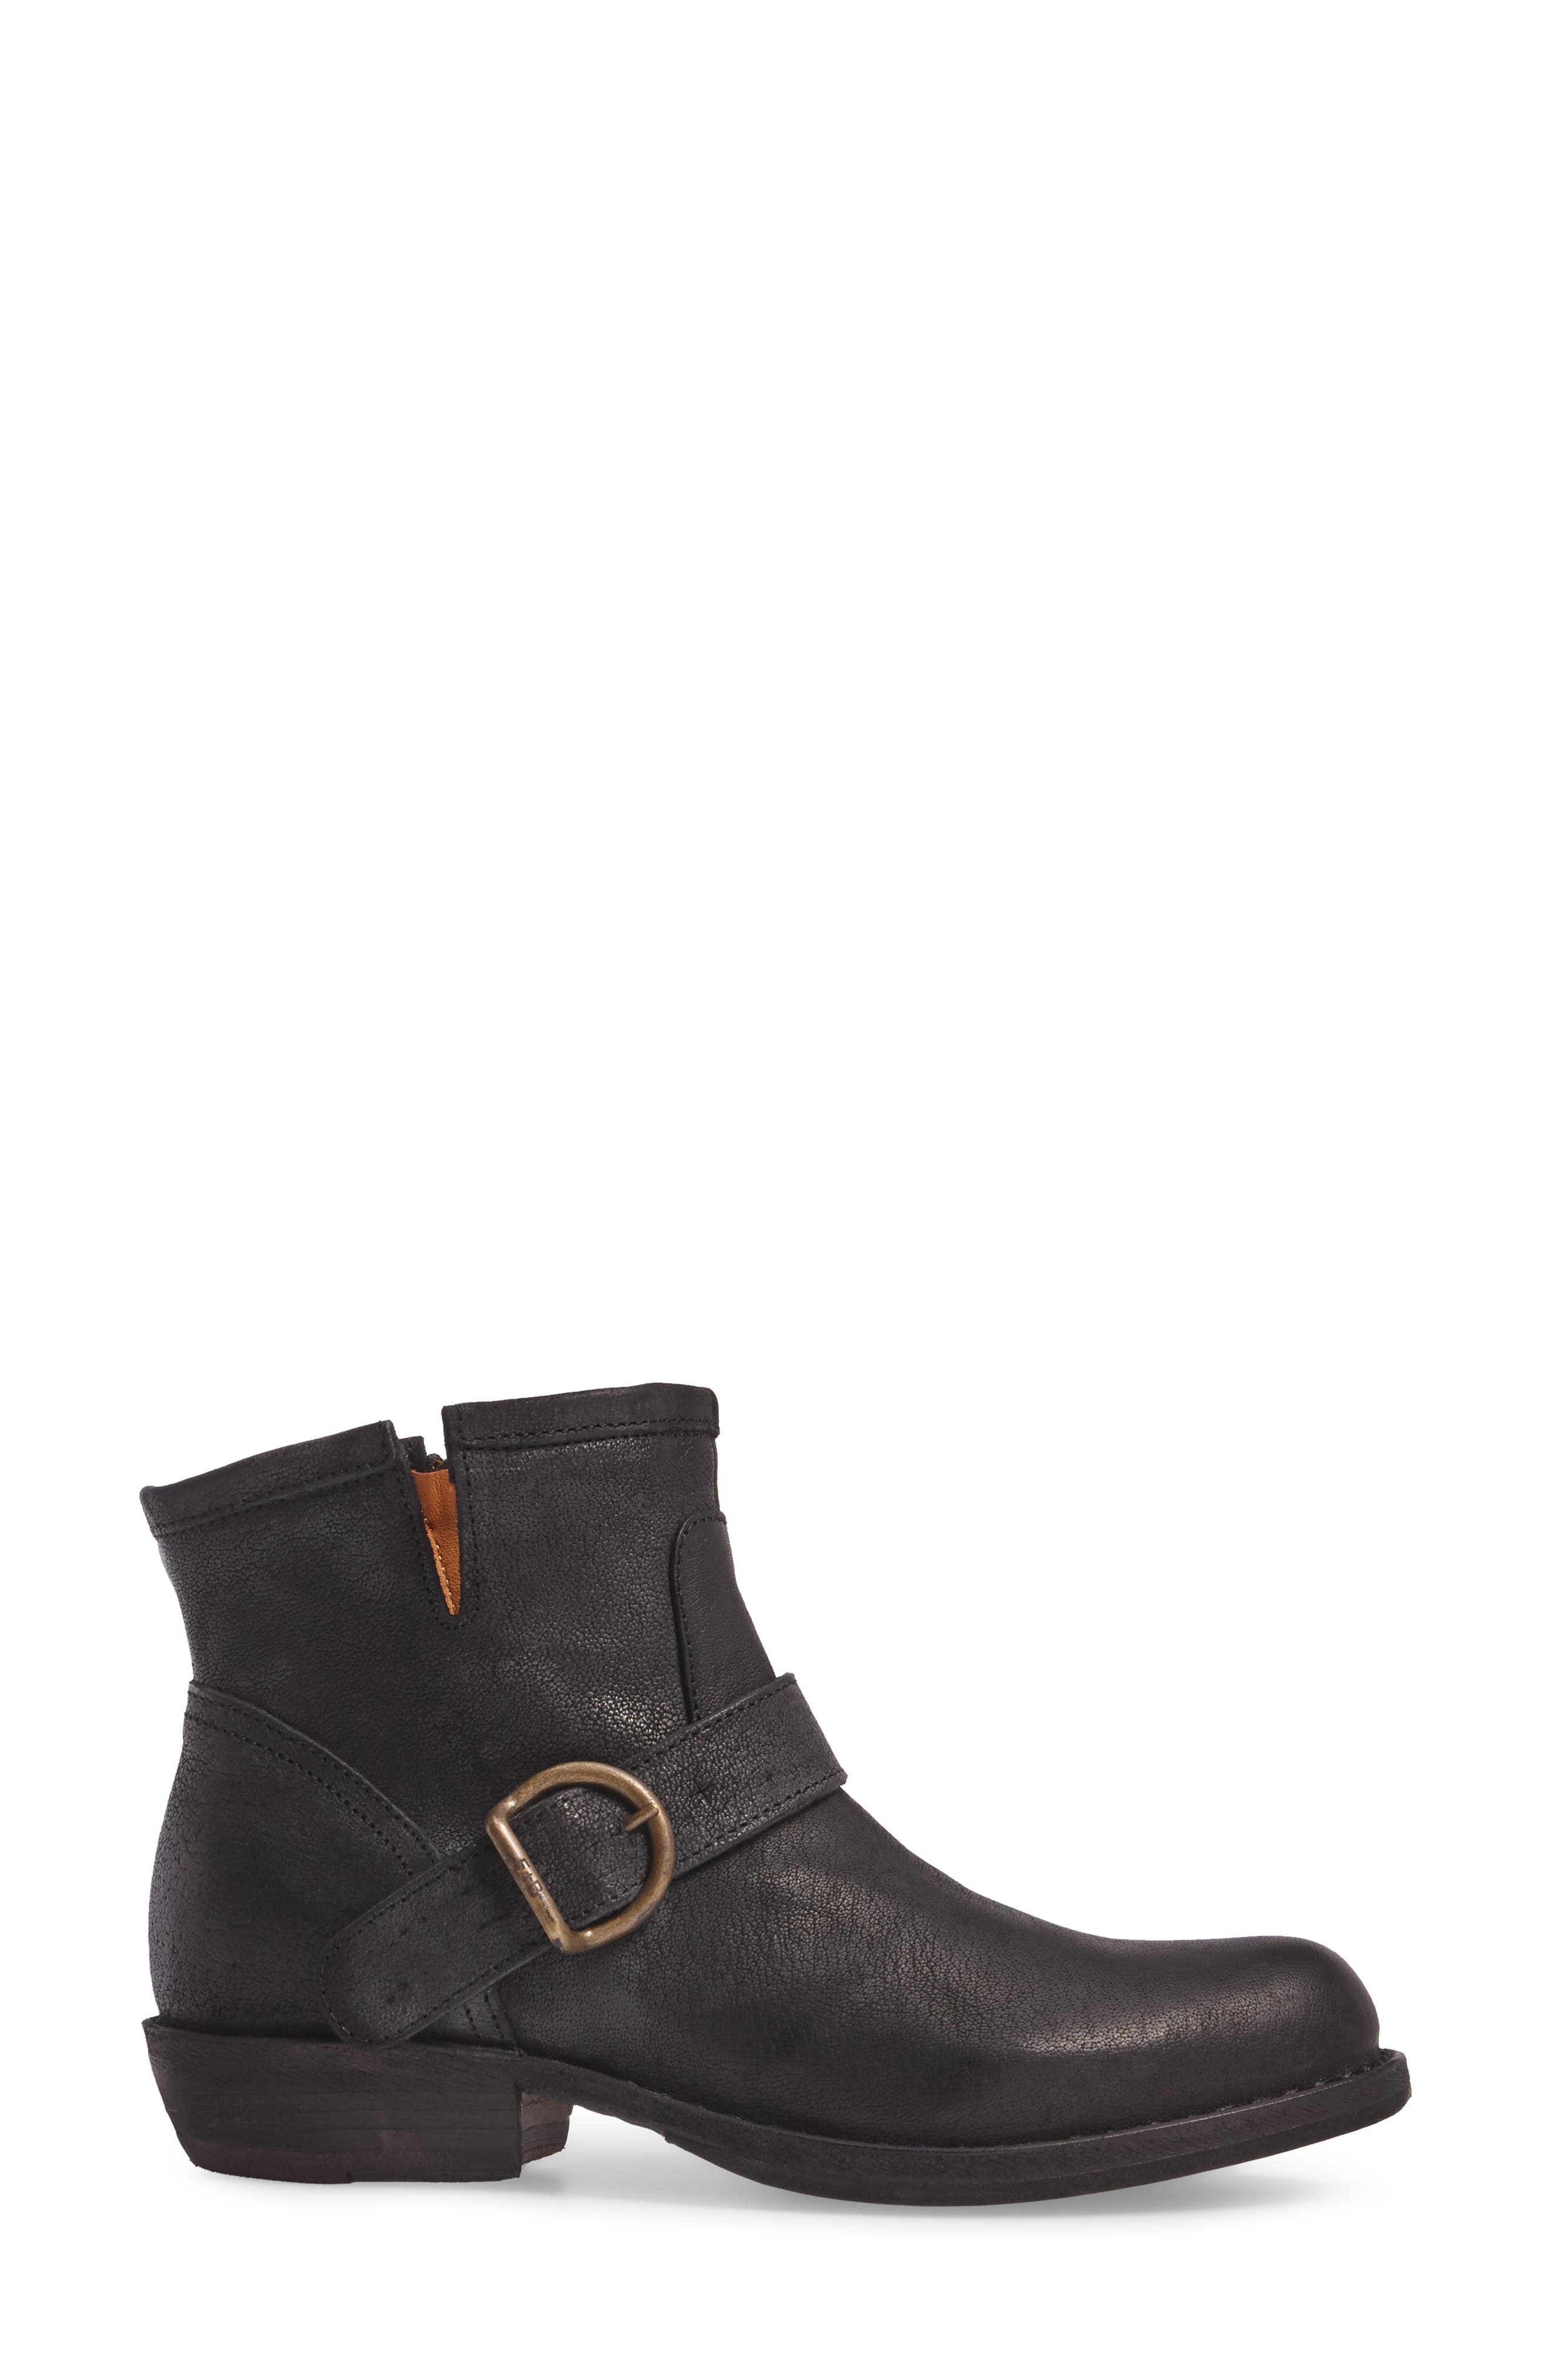 Alternate Image 3  - Fiorentini + Baker 'Chad' Textured Leather Bootie (Women)